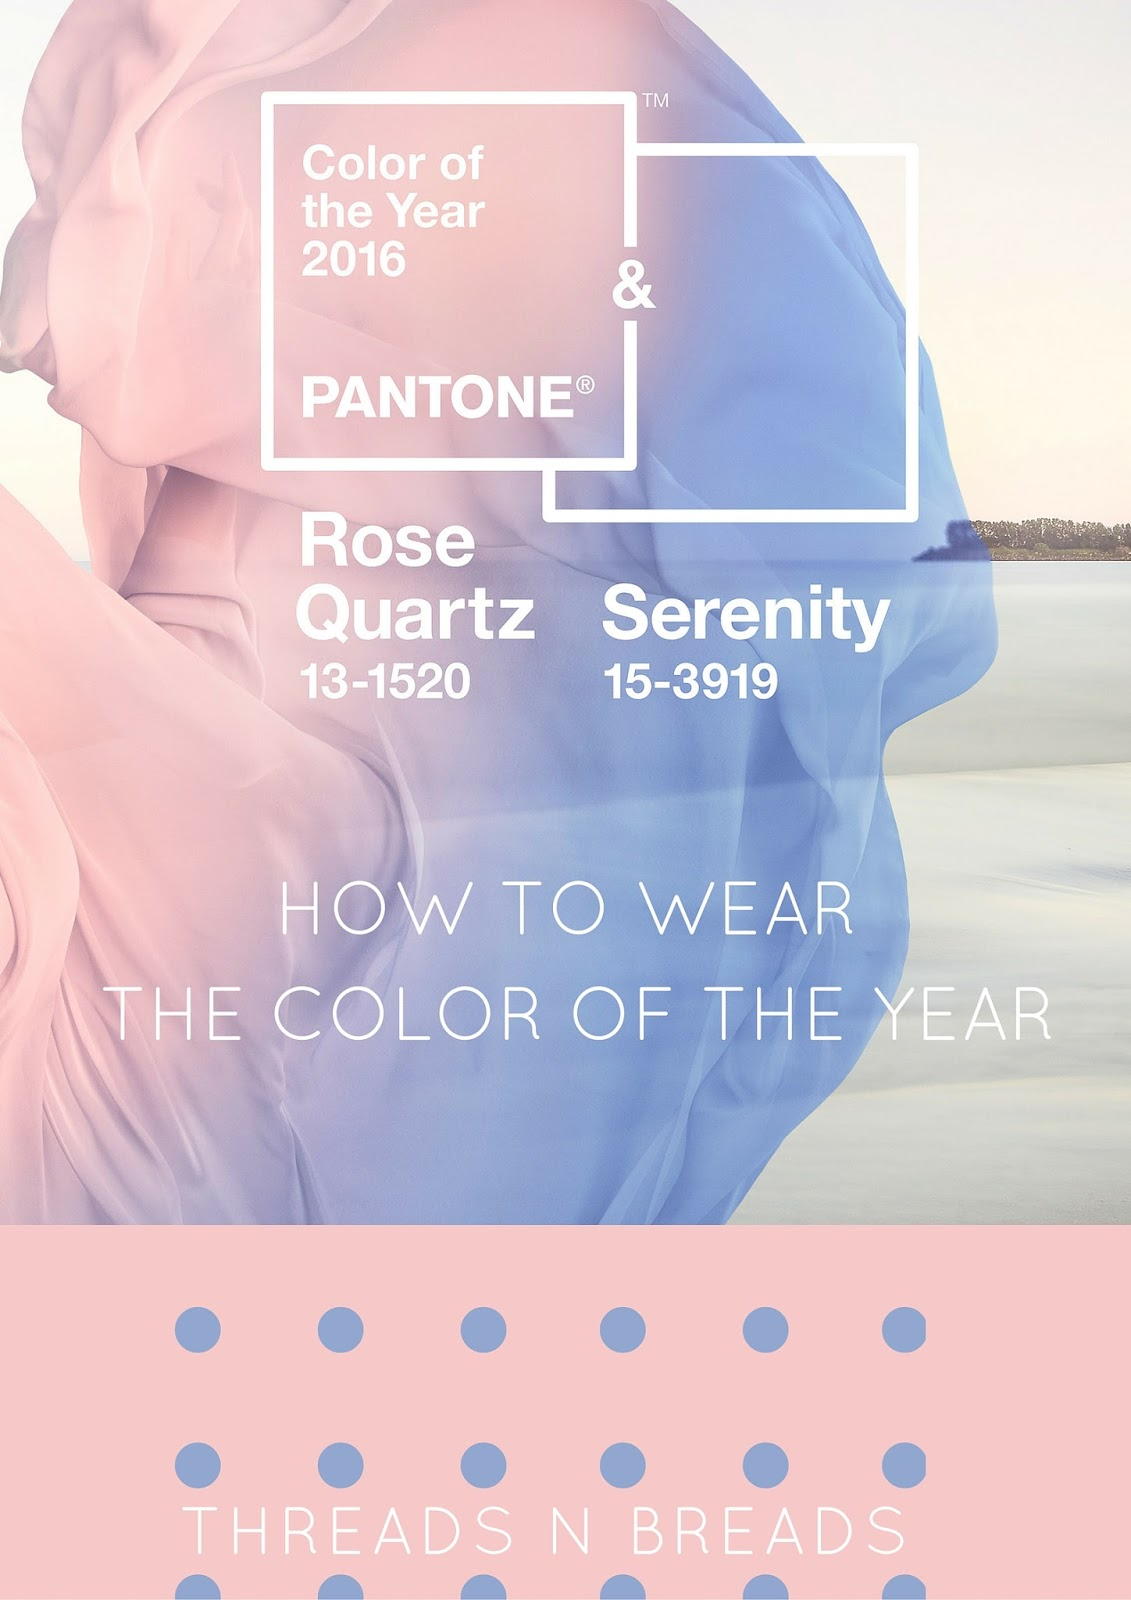 Pantone Color 2016 Pantone Color Of The Year Rose Quarts Serenity Threads N